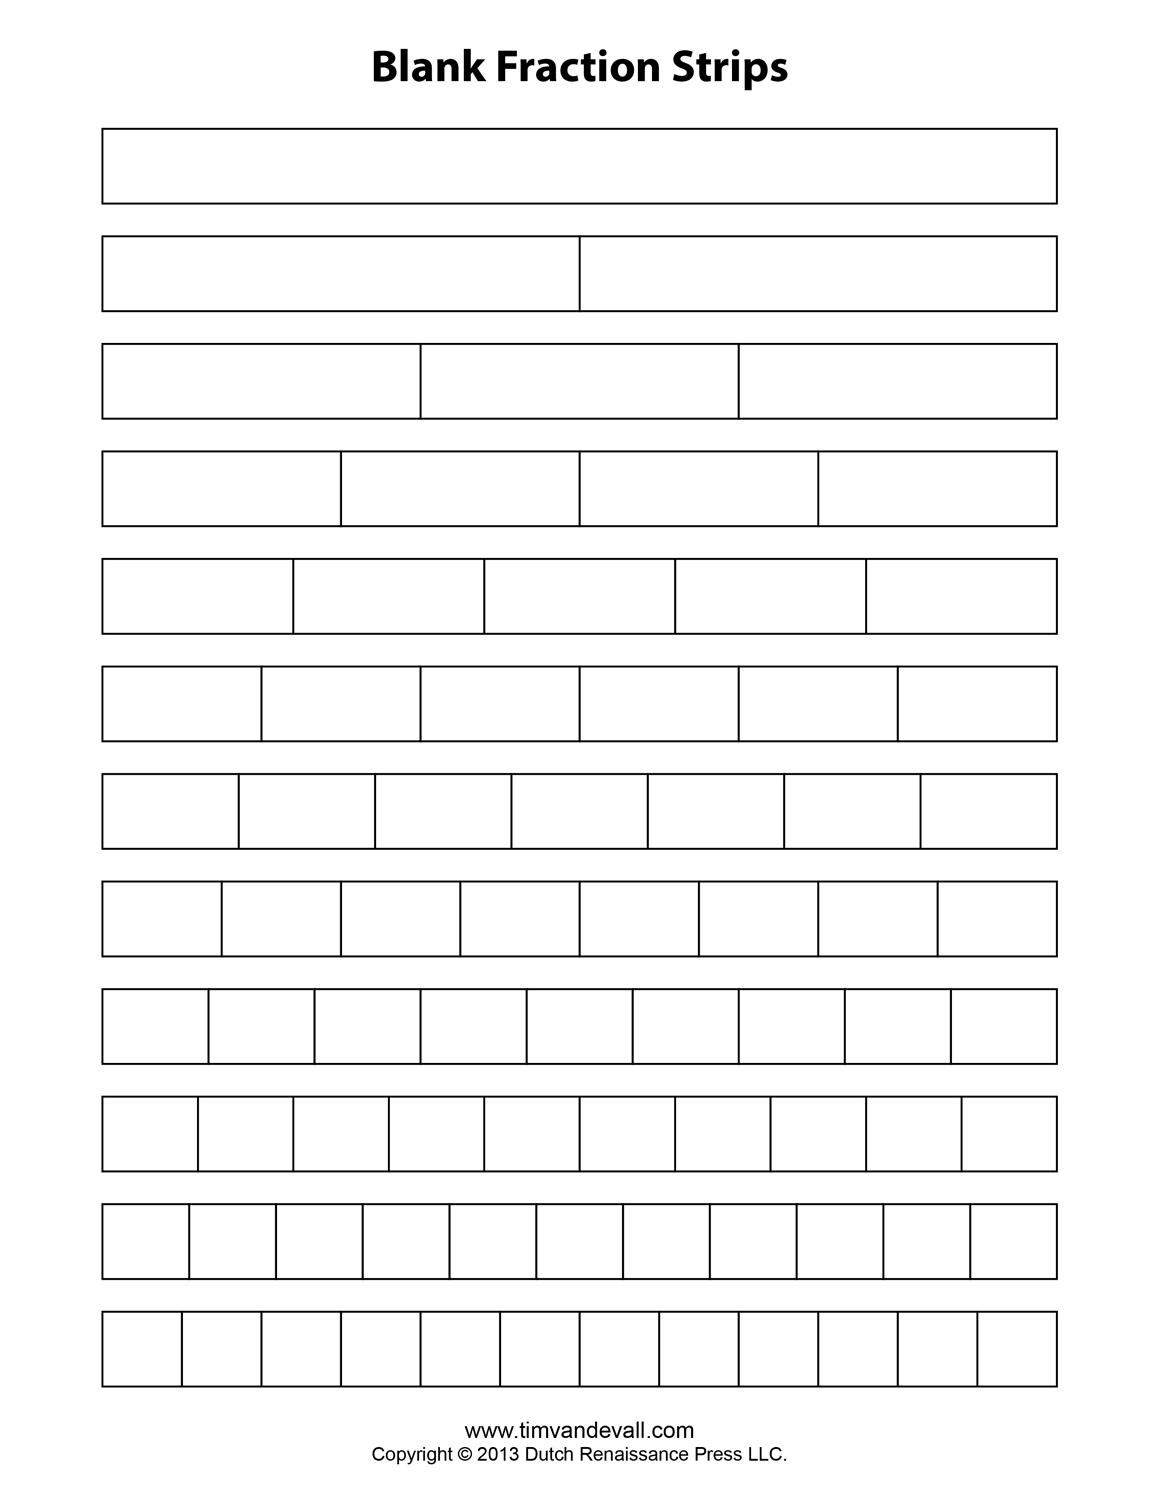 Fraction Strip Templates for Kids School Math Printables – Fraction Strips Worksheets